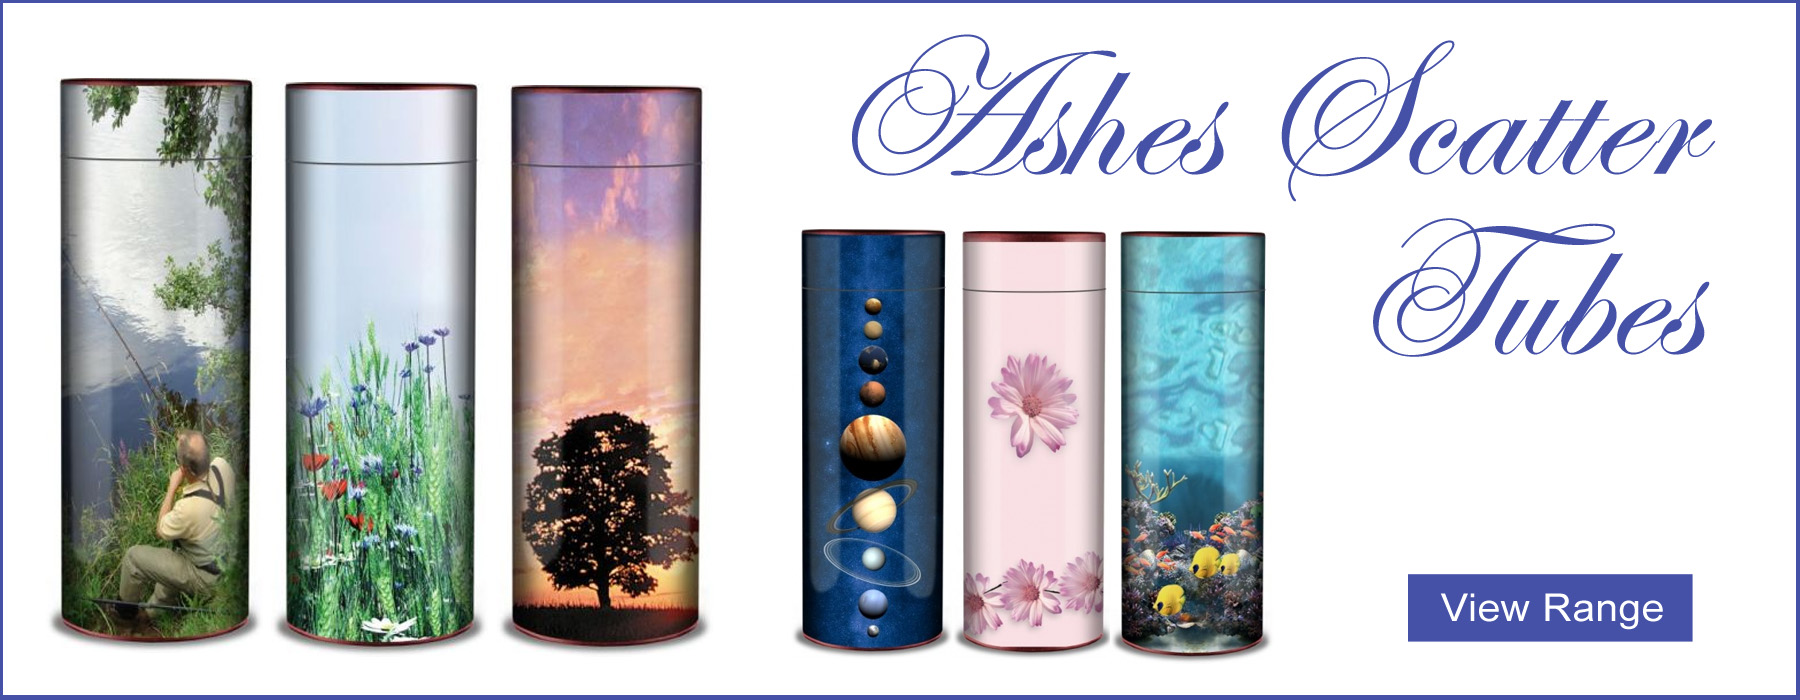 Ashes Scattering Tubes